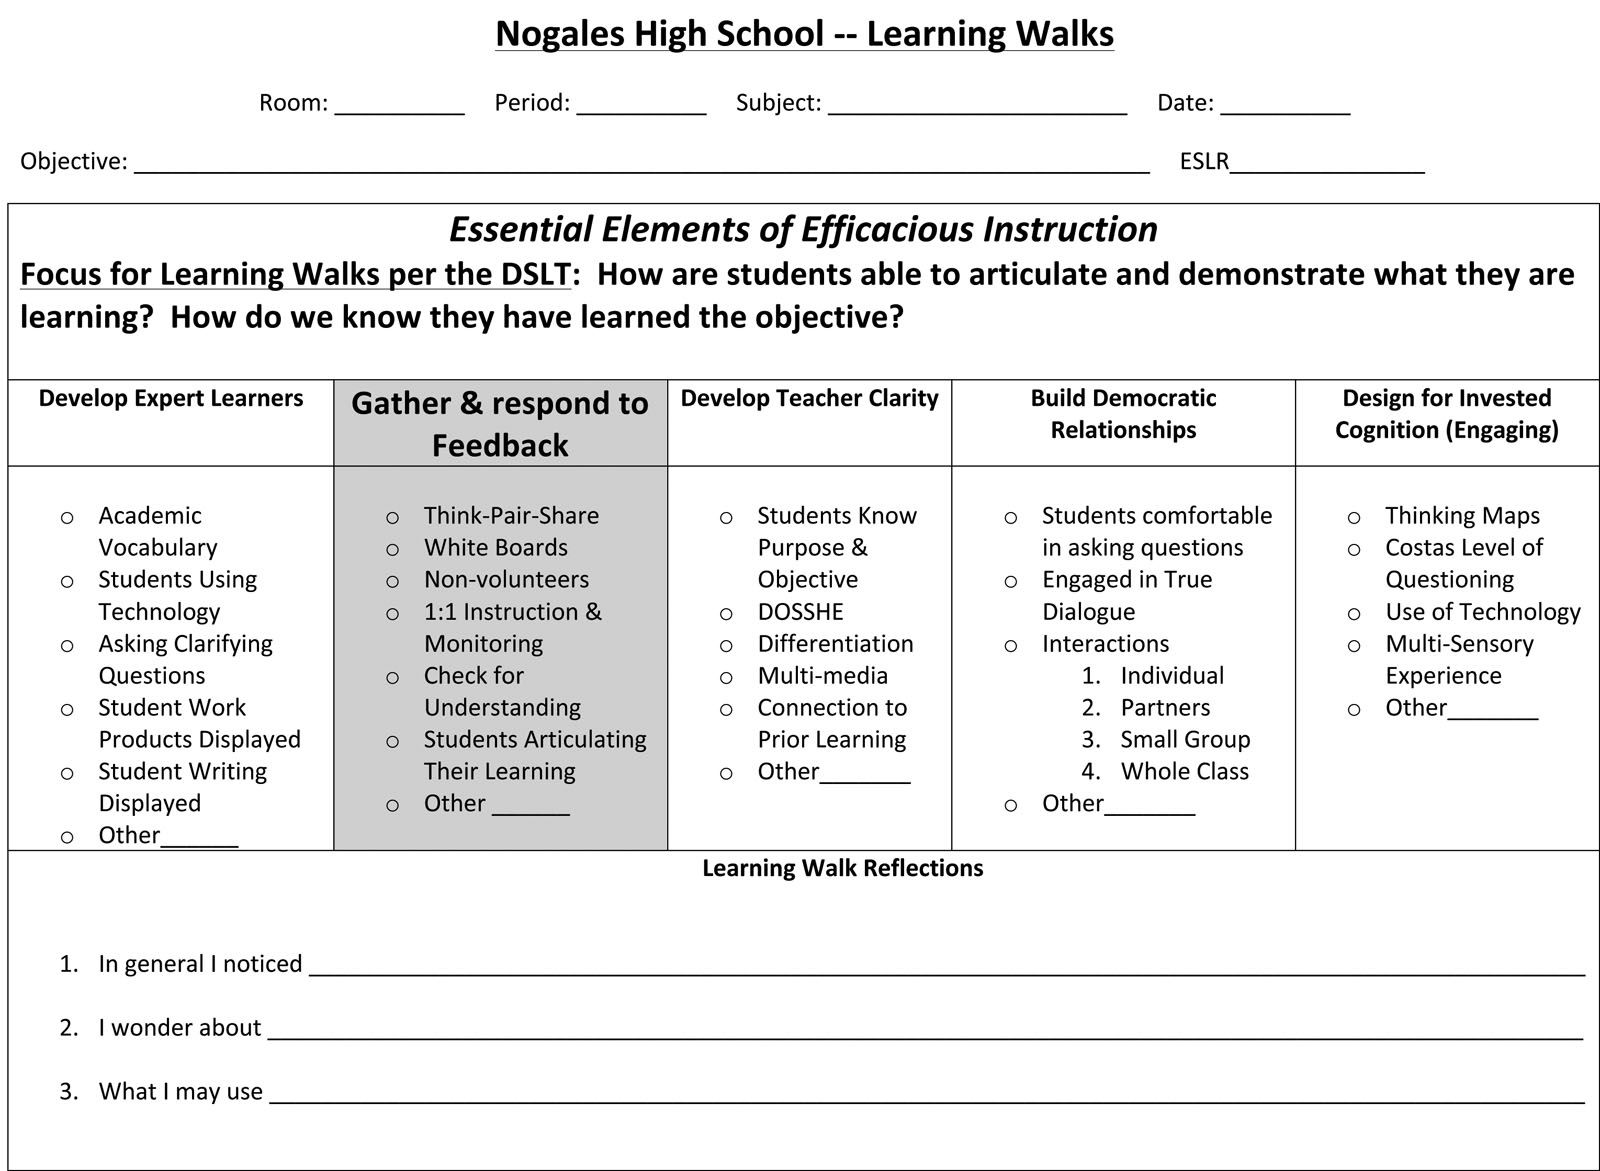 Good Peer Evaluation Form For Teachers To Learn From Each Other